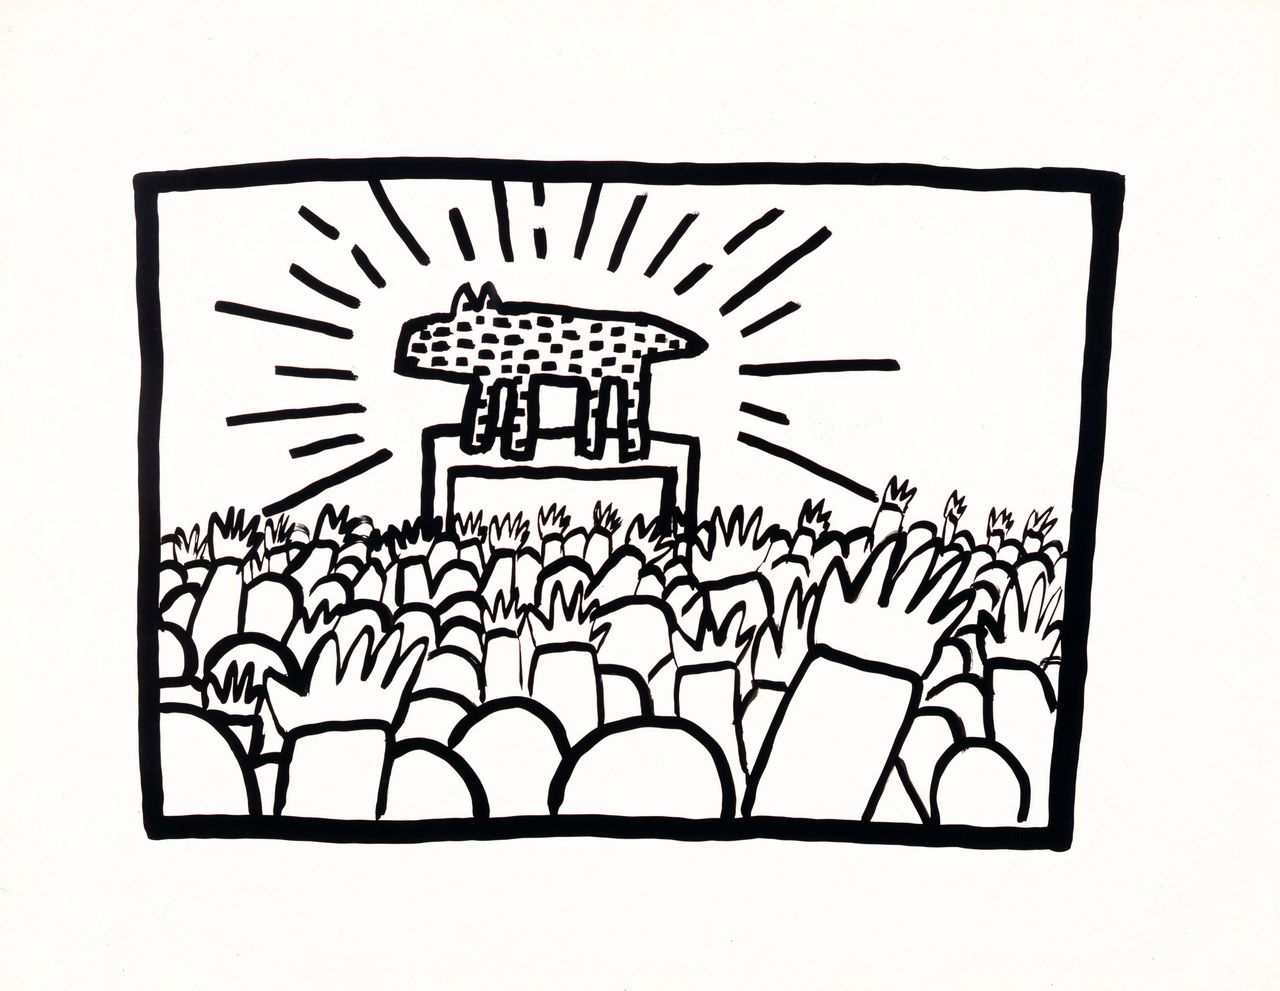 Keith Haring, Untitled. 1980. (Sumi ink on Bristol board. Collection Keith Haring Foundation)